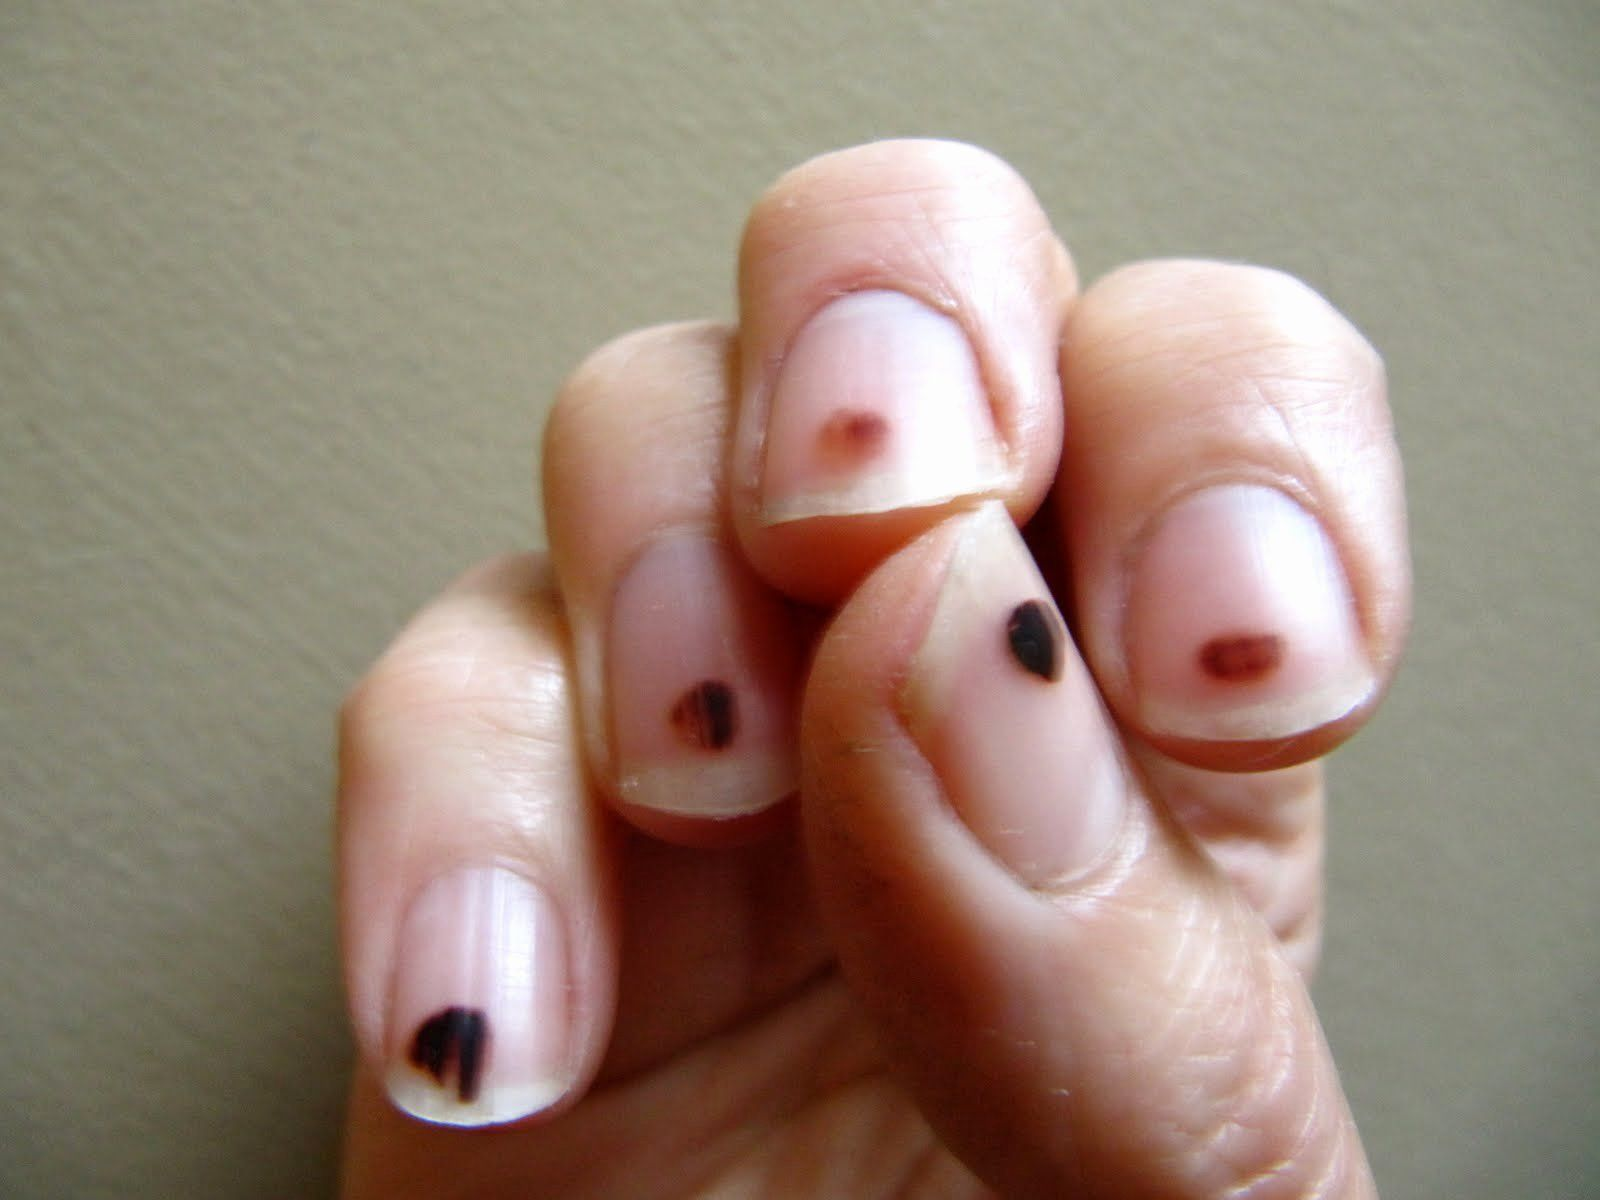 Black Dot On Nail Luxury Black Spot On Toenail Causes Treatments And Prevention In 2020 Black Lines Under Nails Black Nails Black Nail Designs